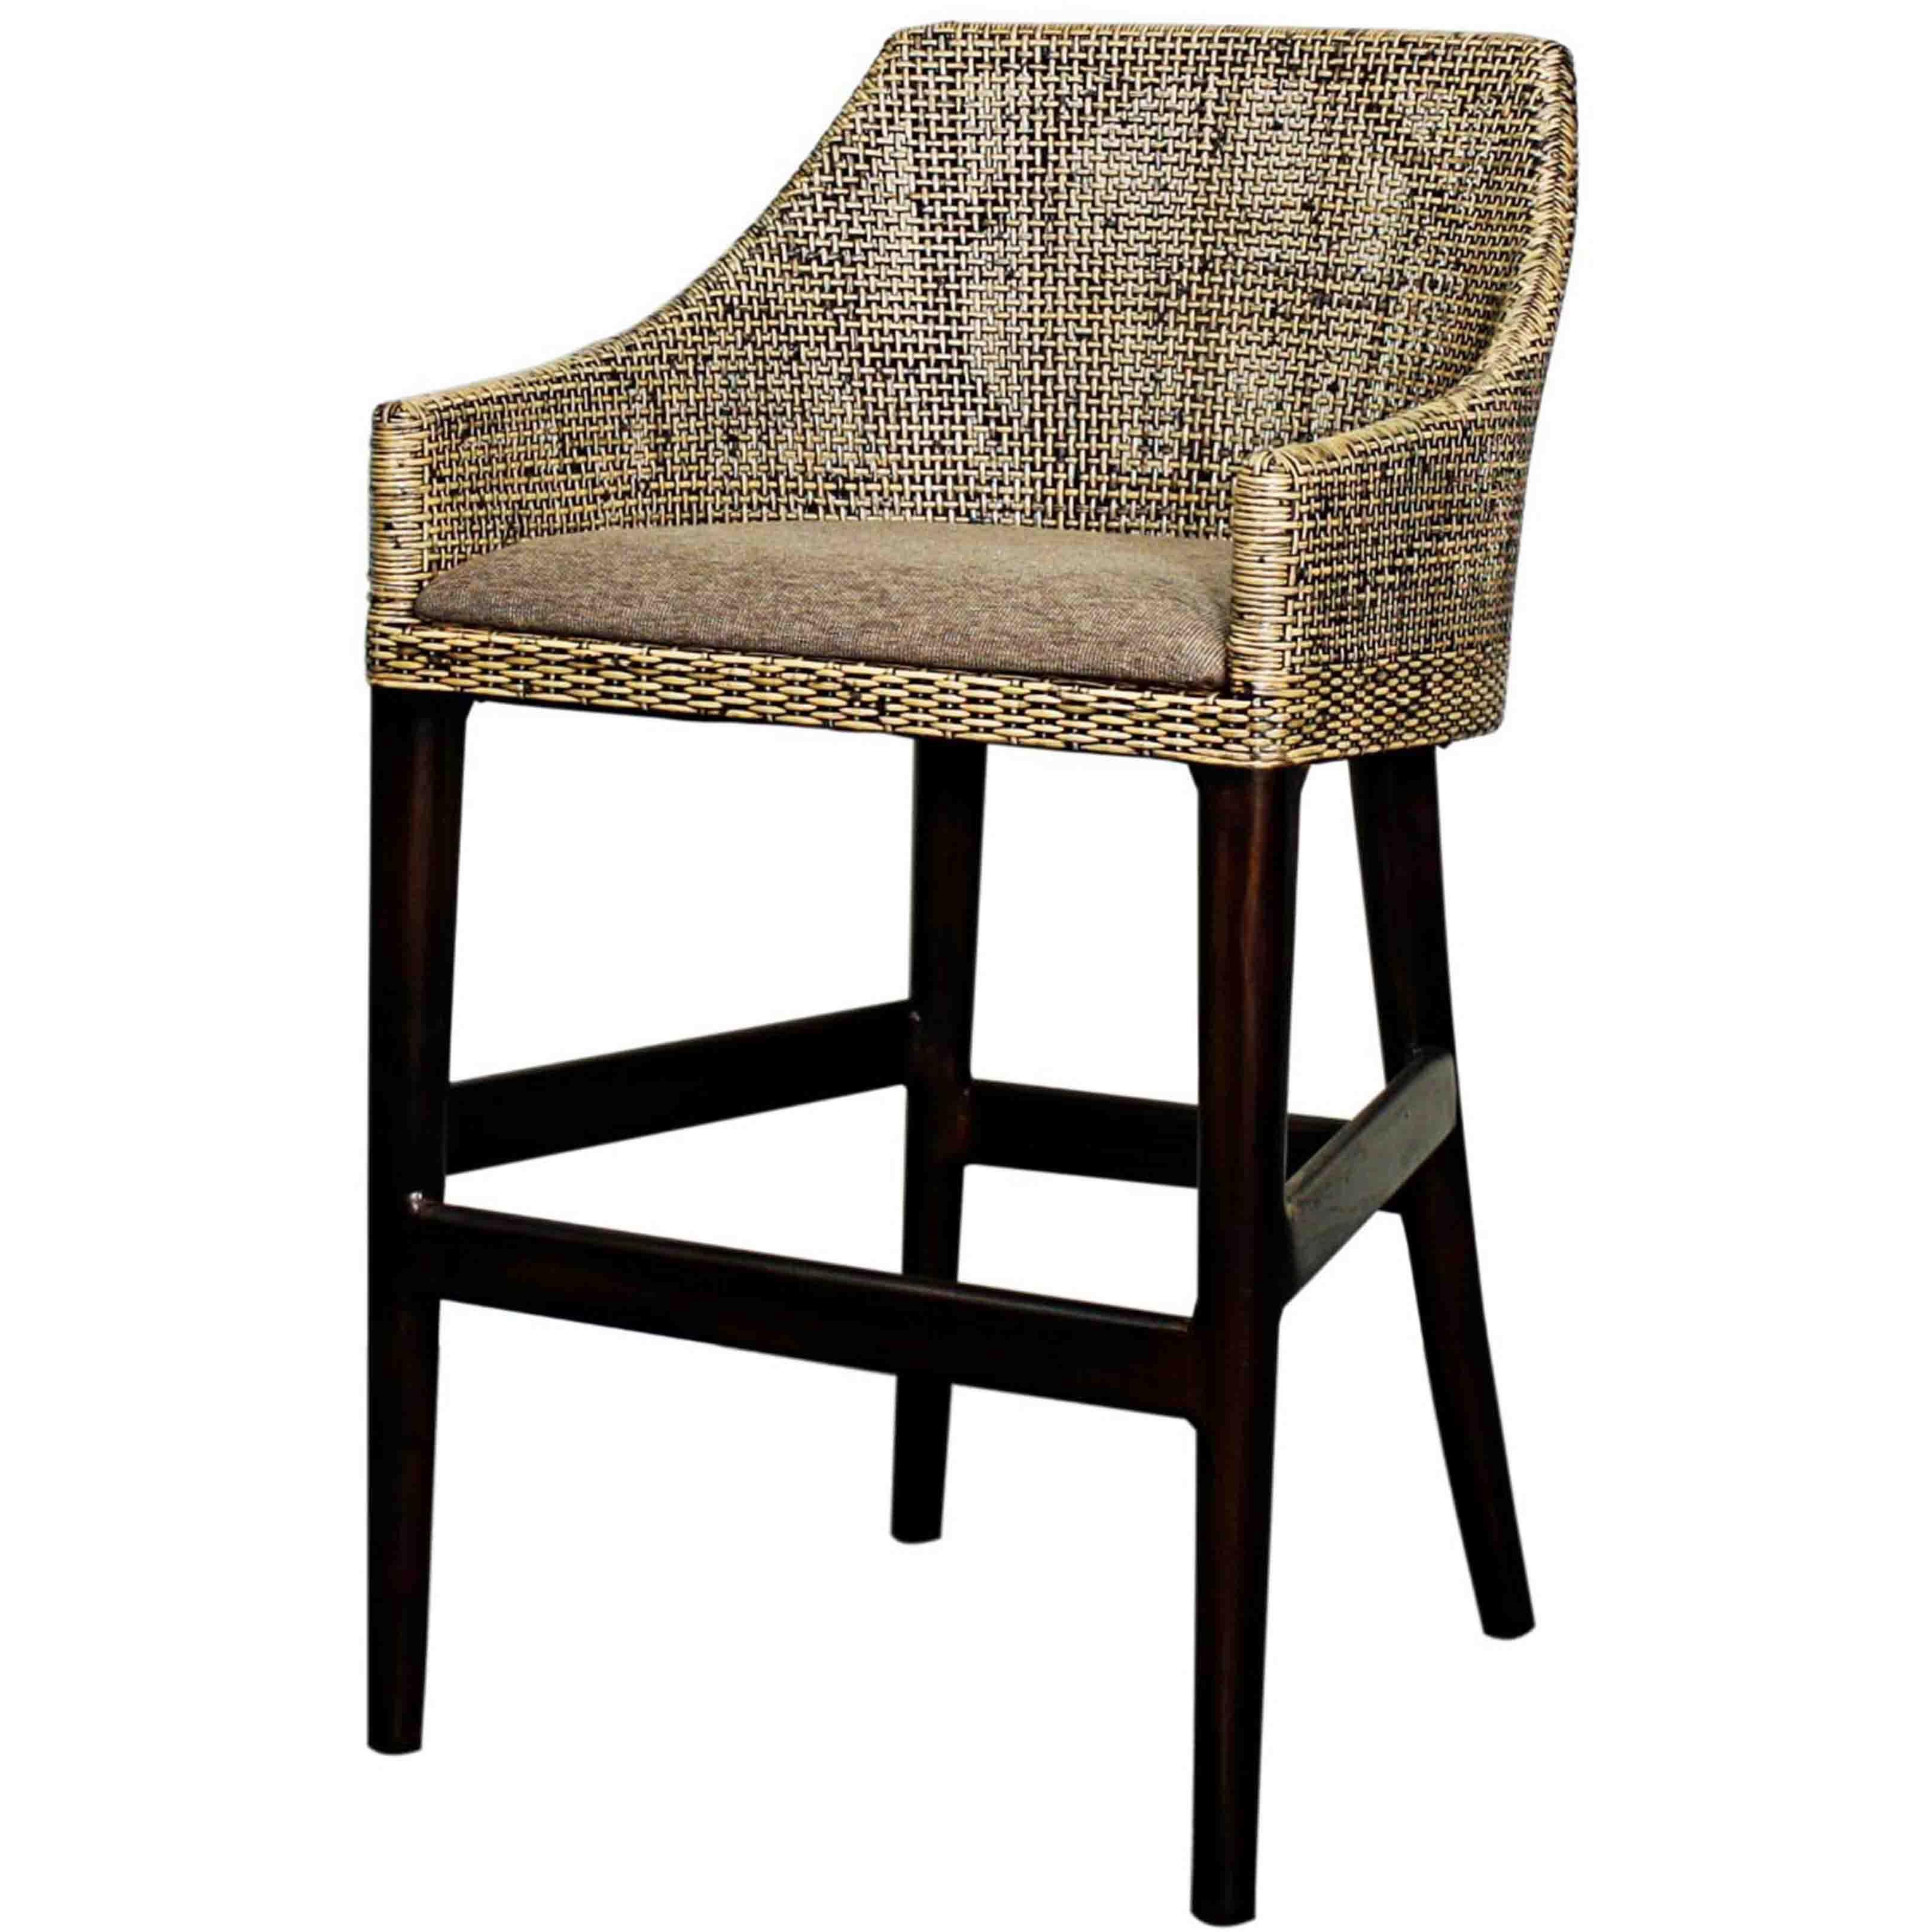 Orlanda Rattan Counter Stool Black Shadow Leg Black Shadow 878526